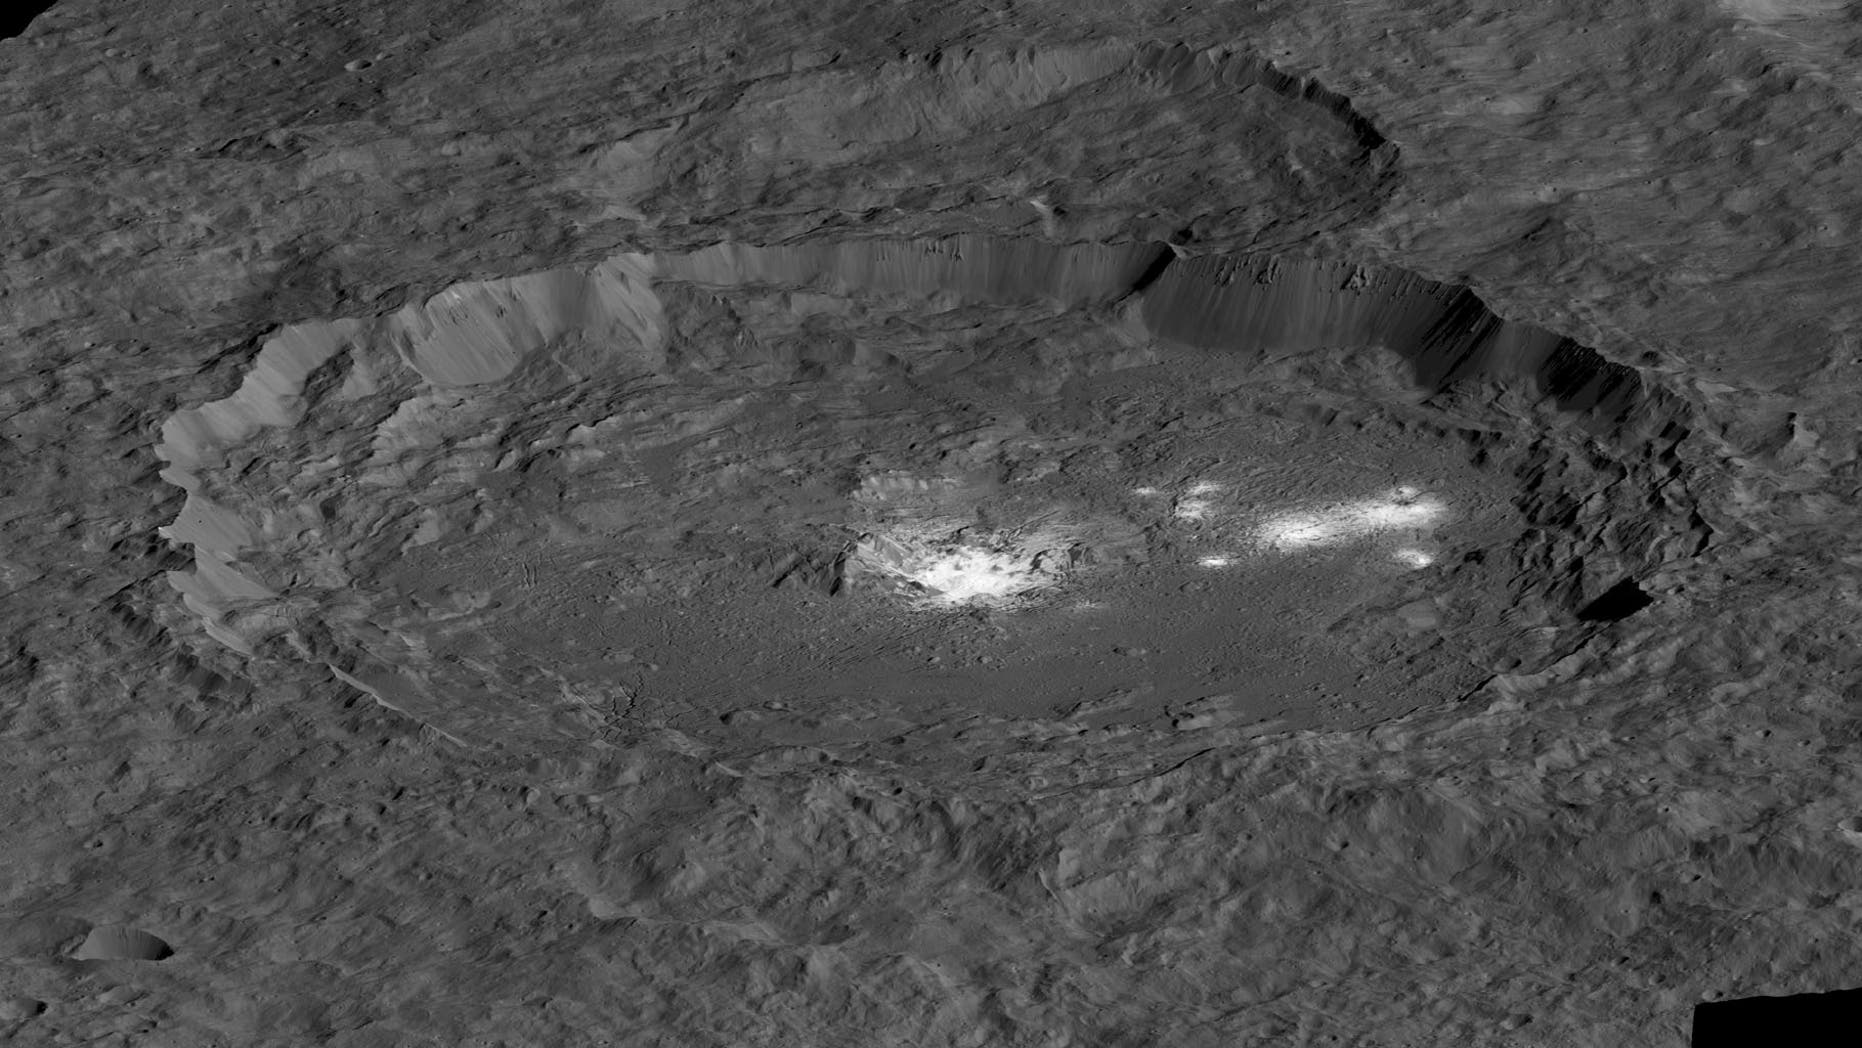 A view of the bright spots of the dwaf planet Ceres' Occator Crater. Cerealia Facula lies in the middle, while Vinalia Faculae is off to the right.